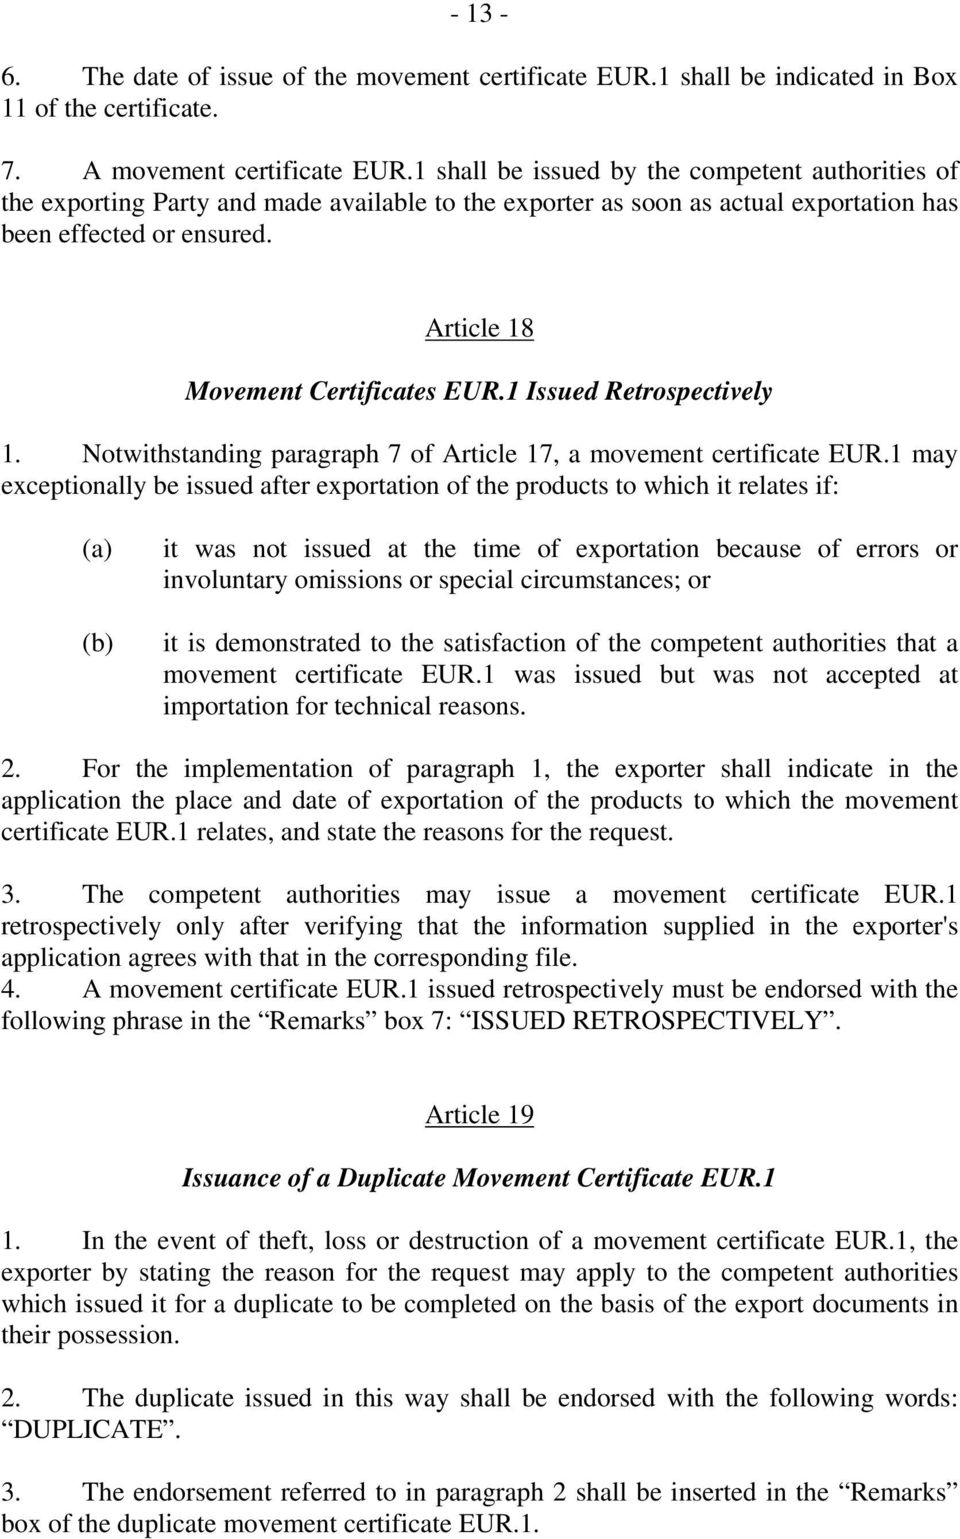 Article 18 Movement Certificates EUR.1 Issued Retrospectively 1. Notwithstanding paragraph 7 of Article 17, a movement certificate EUR.